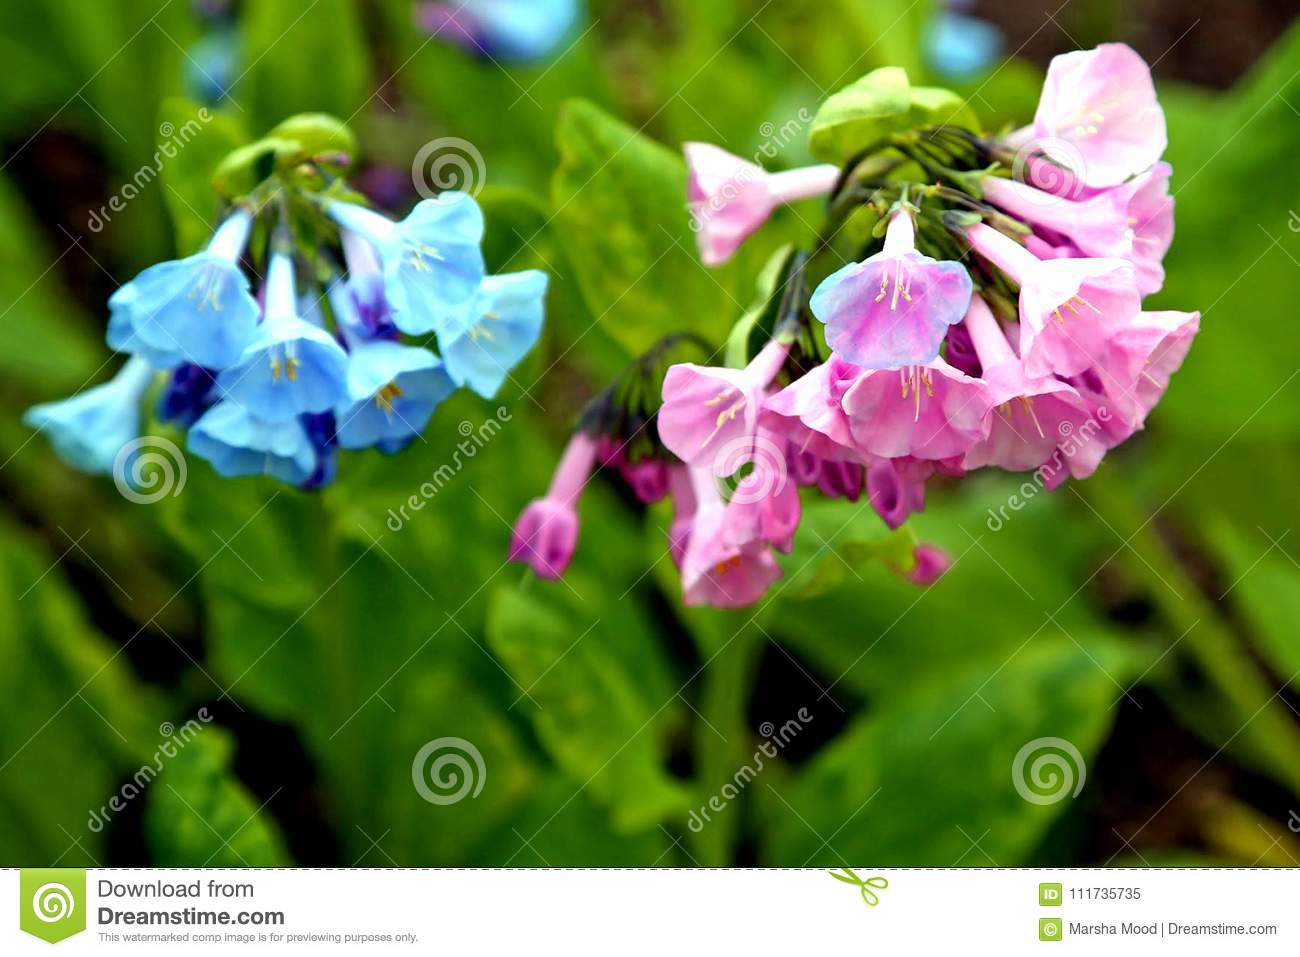 Lovely pink and blue Virginia bluebells blooming in the springtime sun.